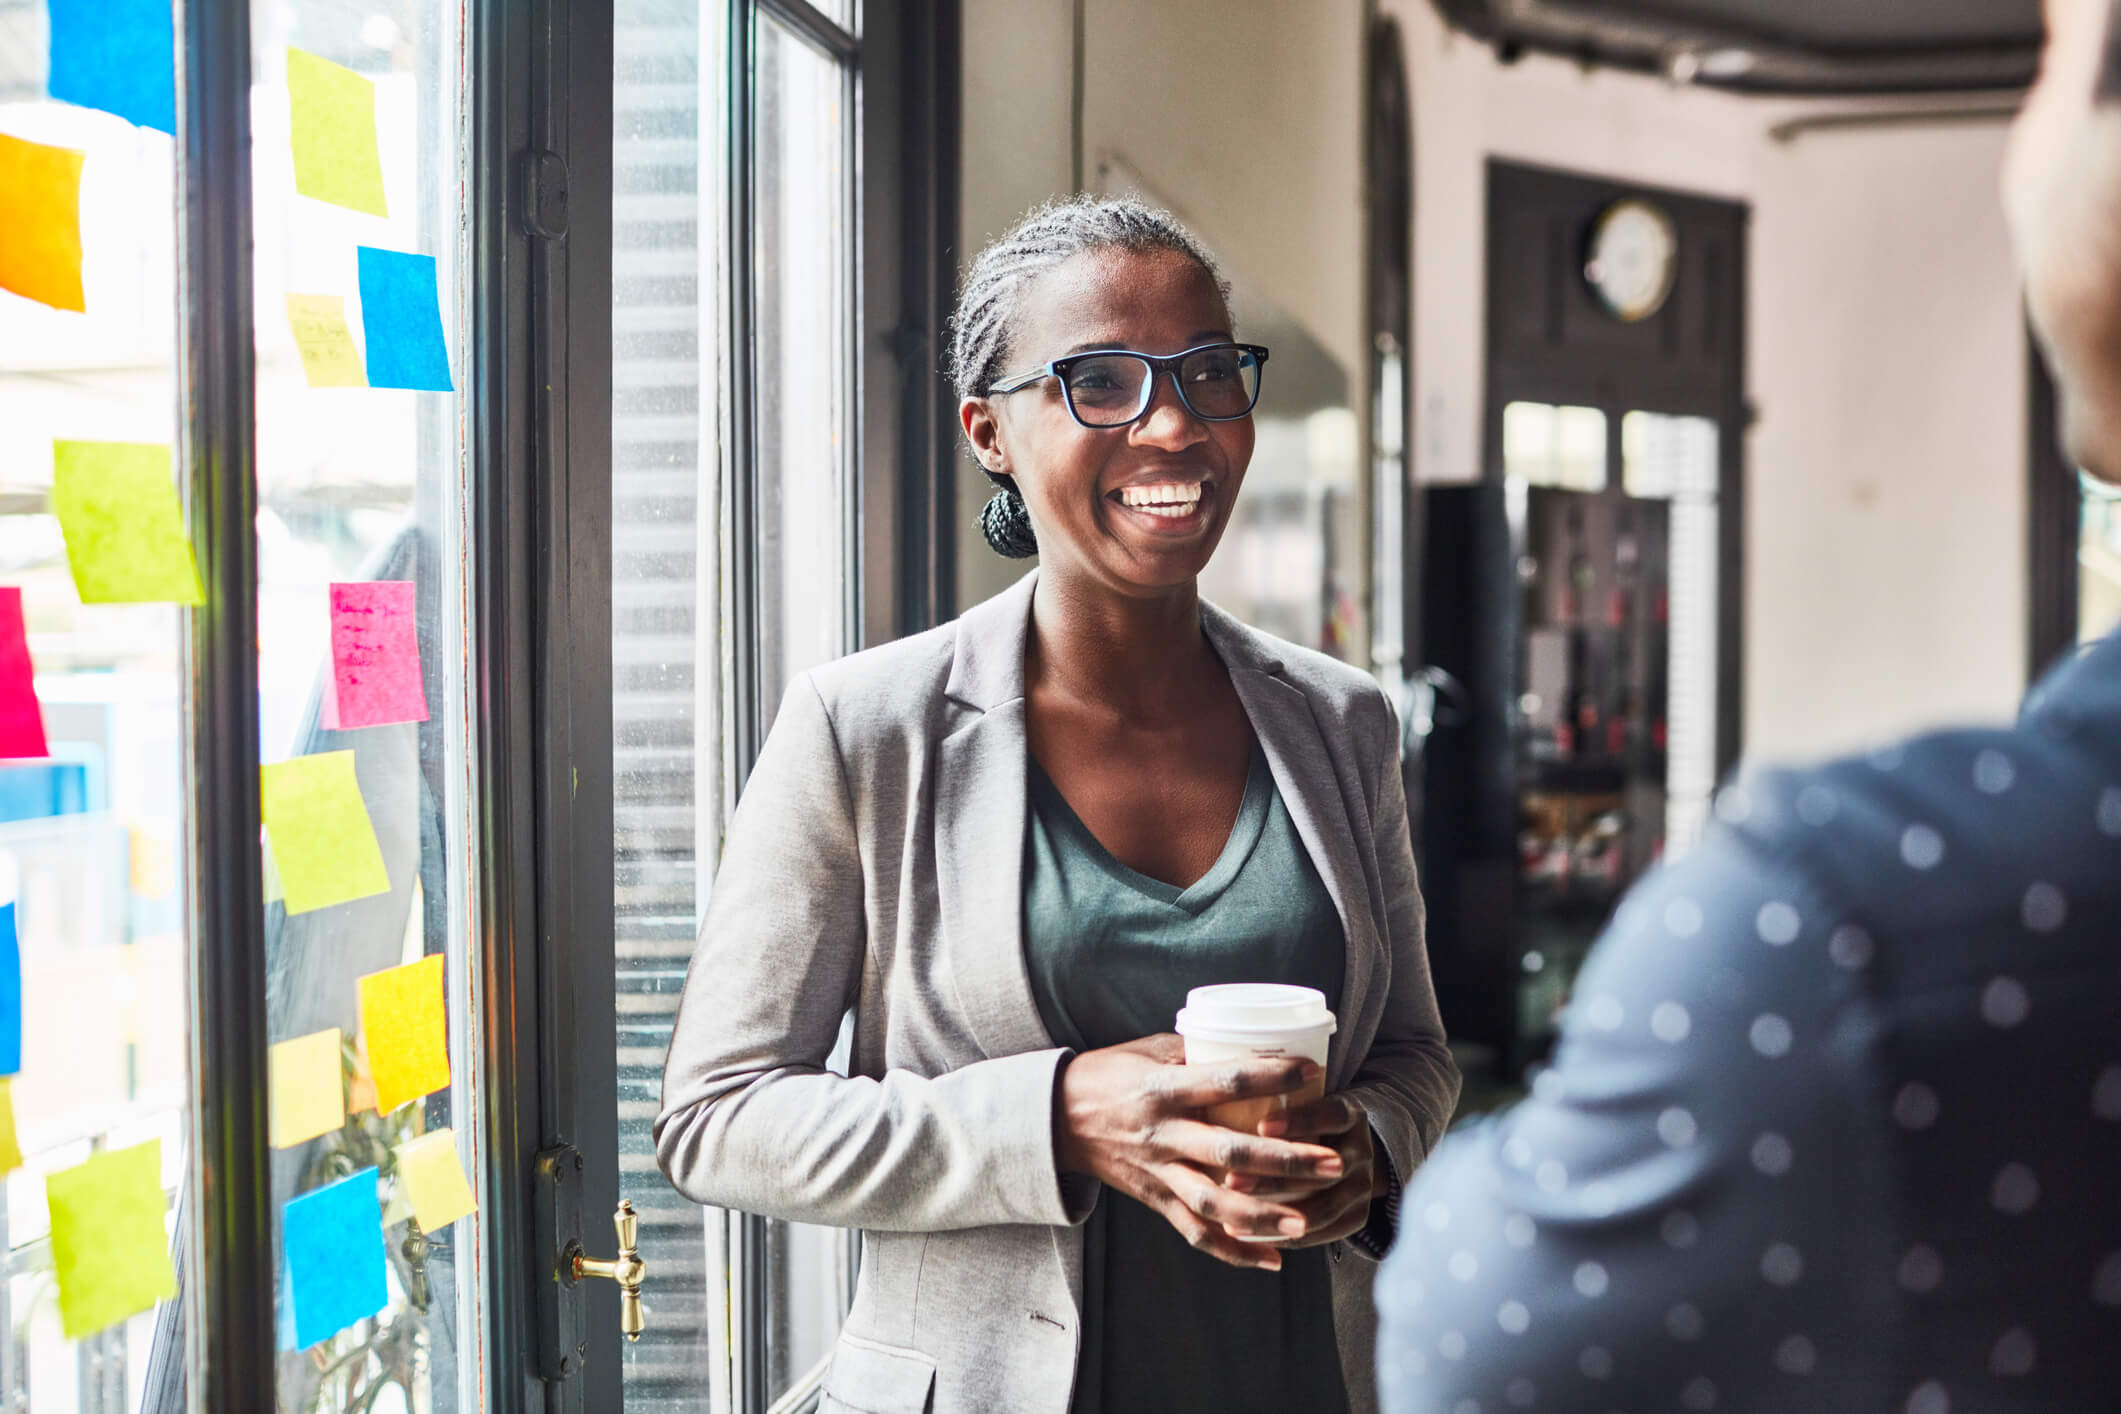 Smiling young woman talking with her colleague while having coffee at office. Business people having a casual talk during coffee break.